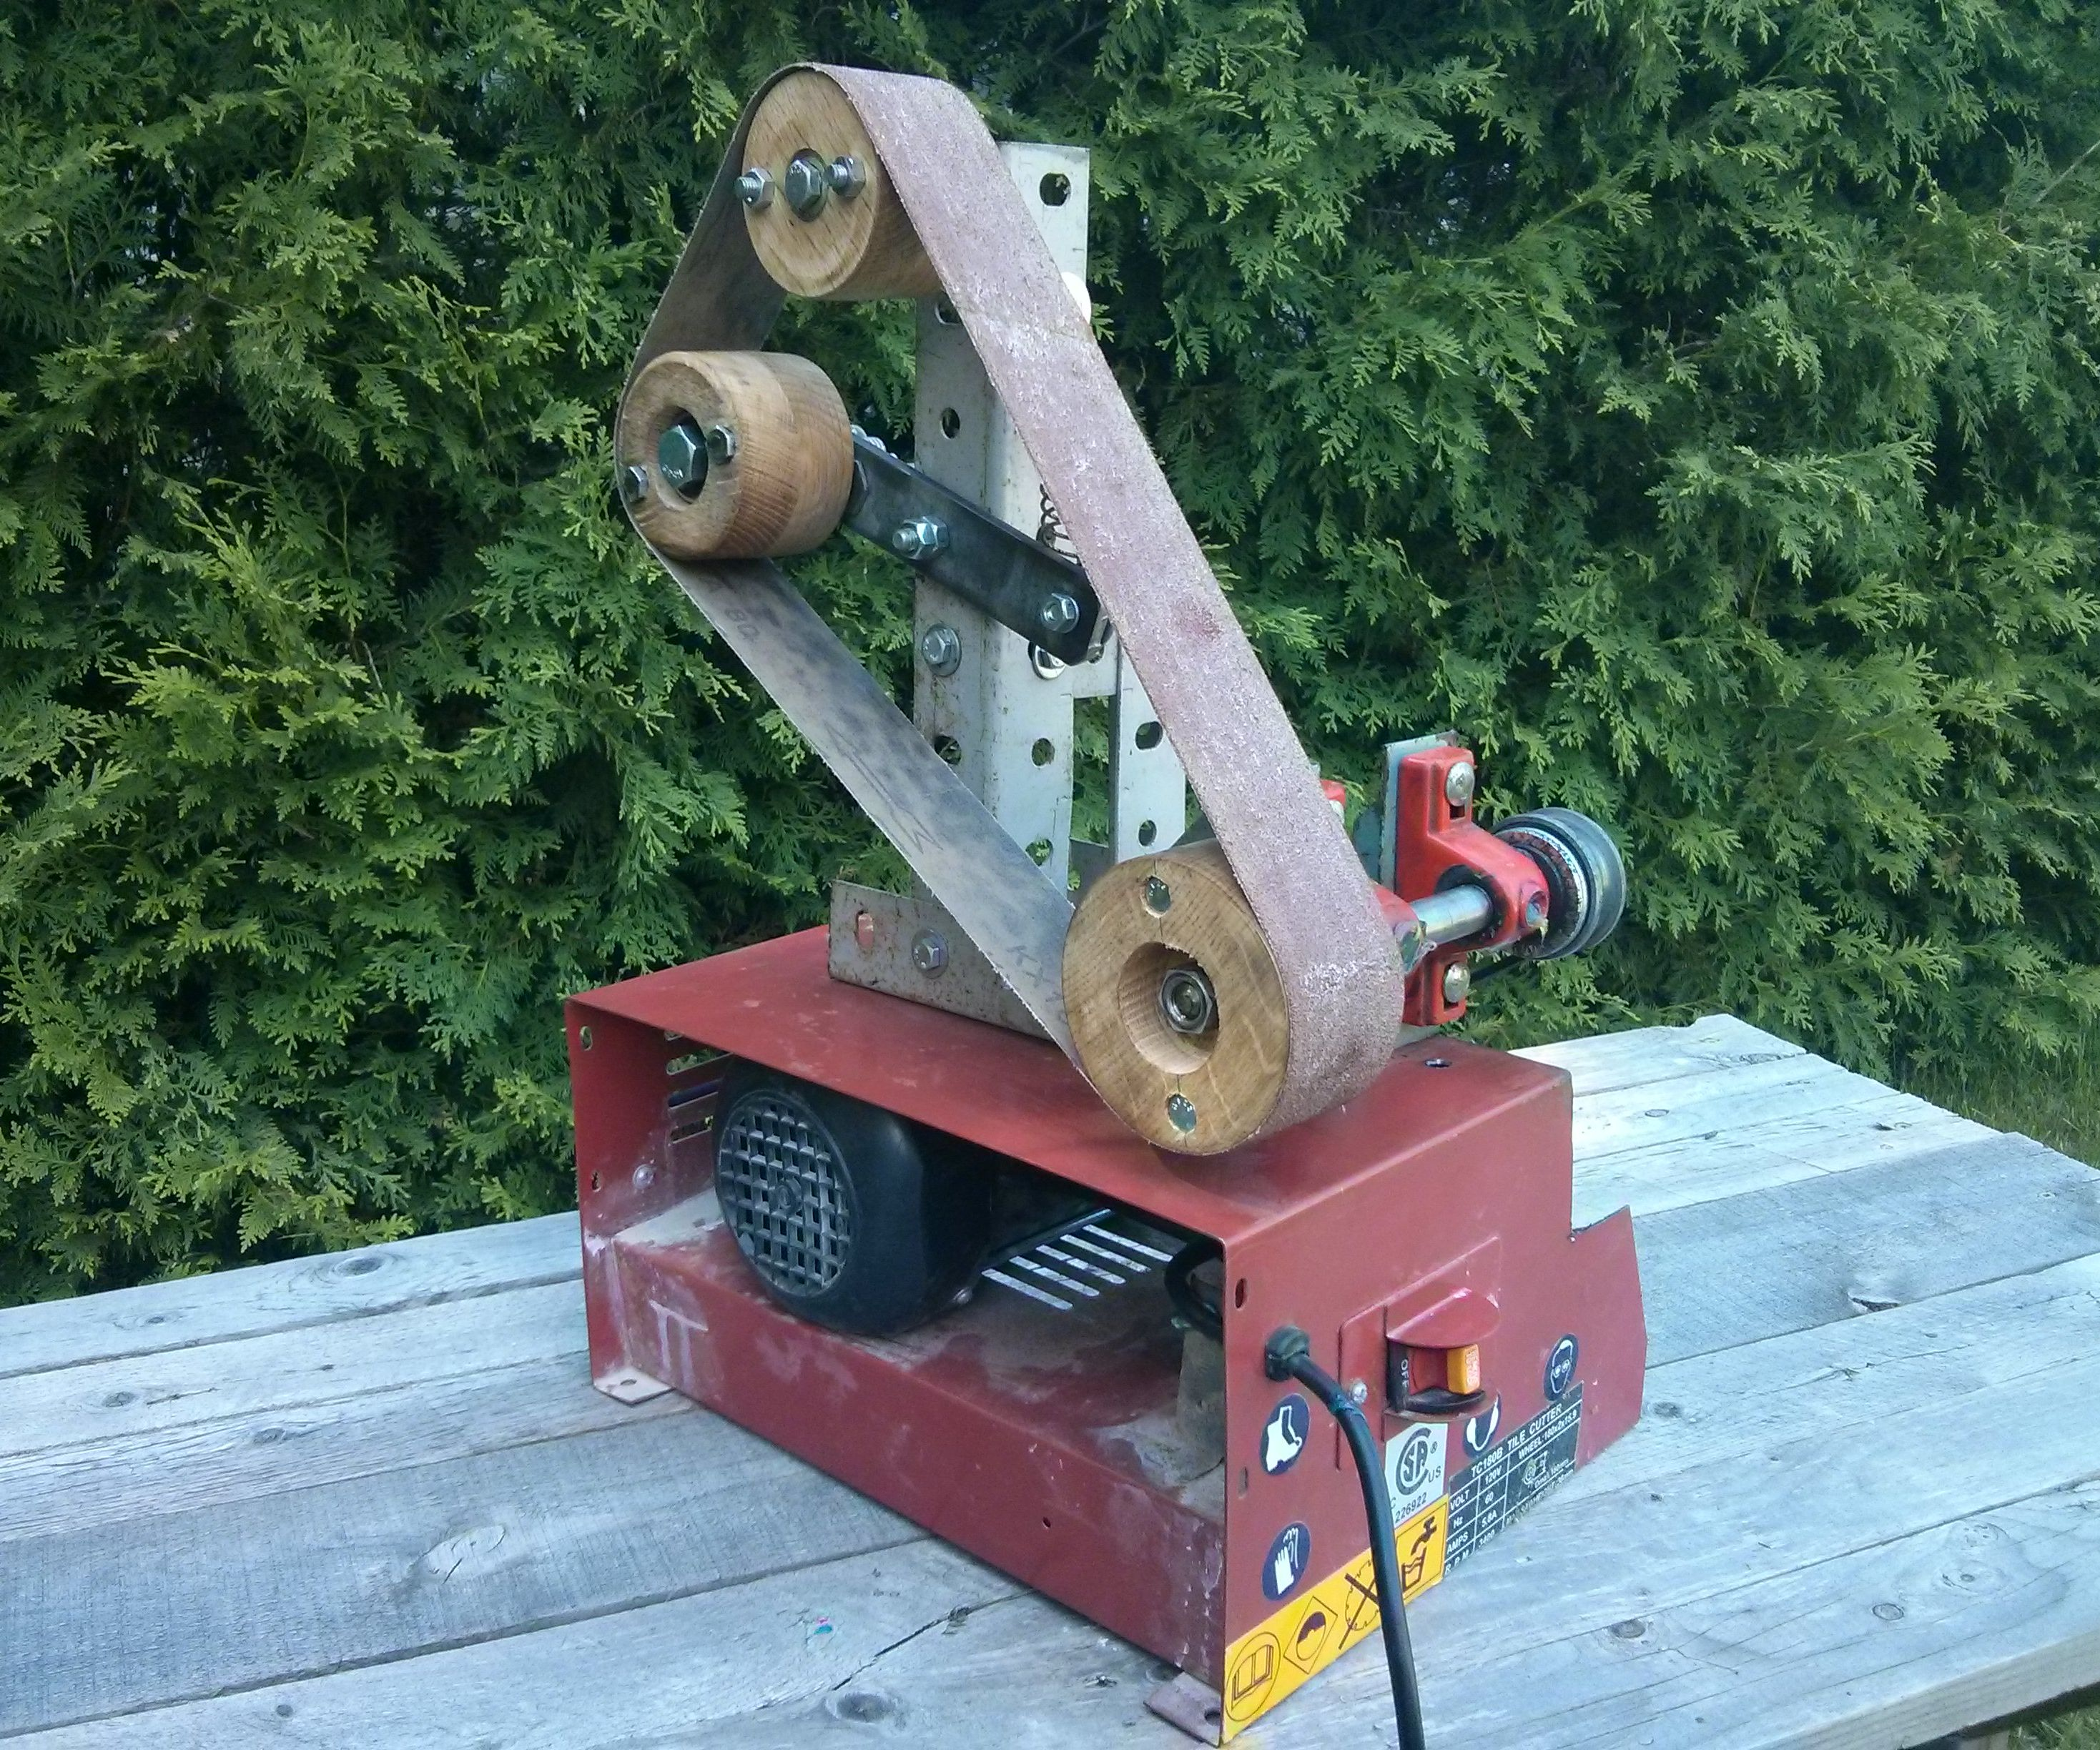 Low Budget Knife-maker's Bench Grinder